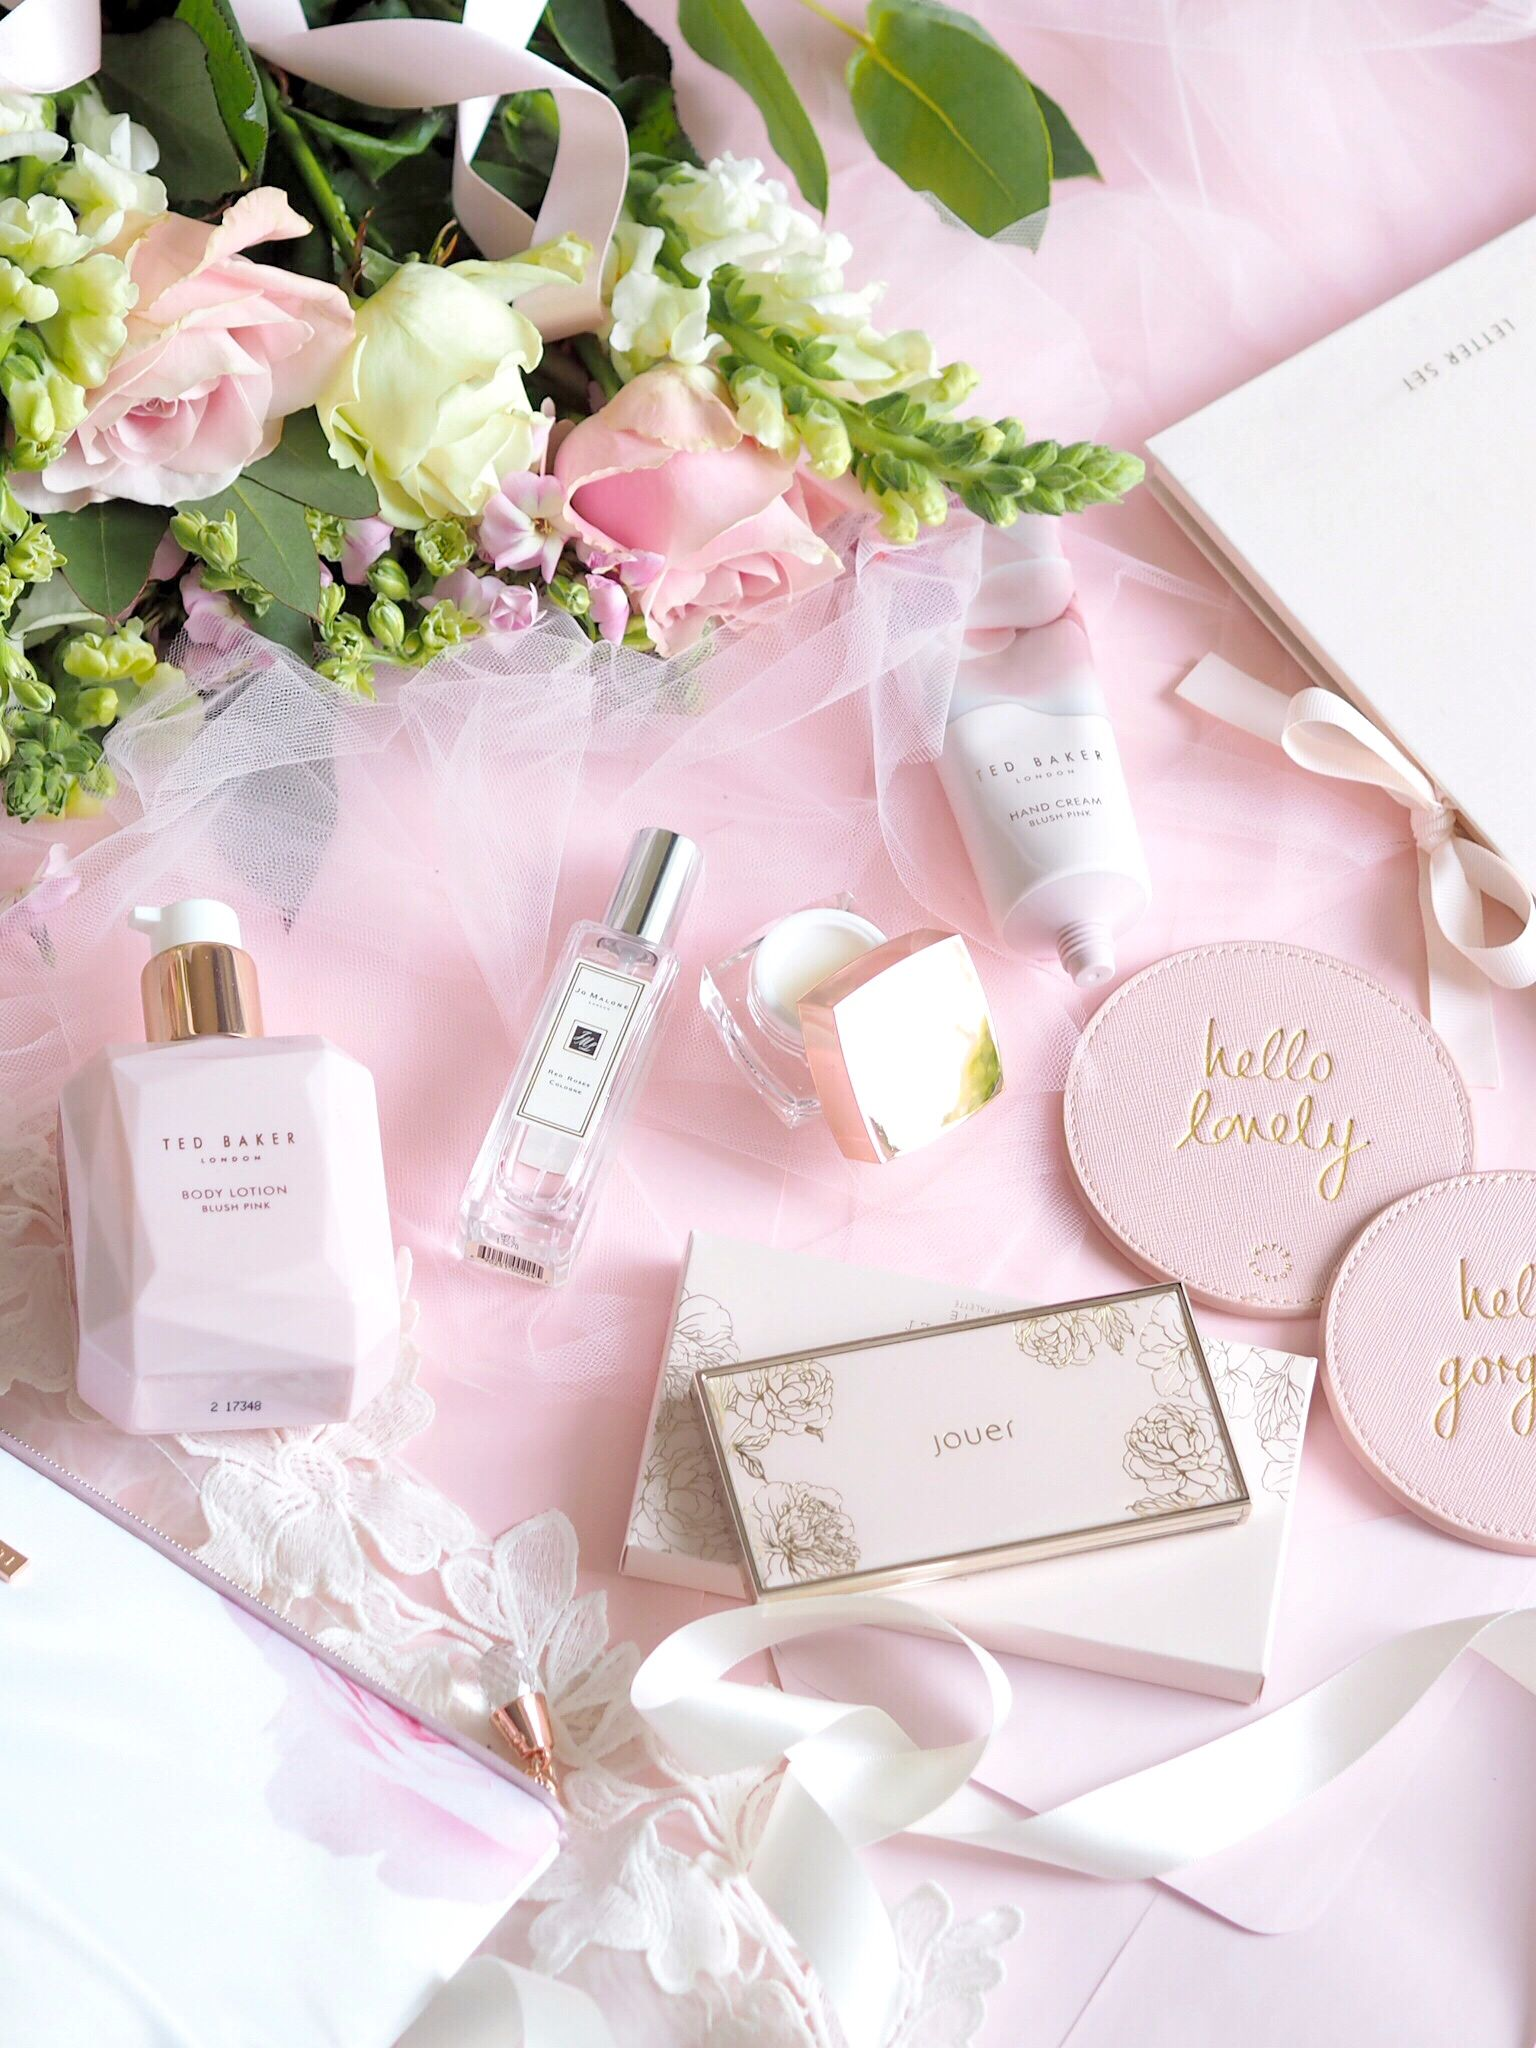 Special Gift Ideas For Mother's Day, Gift Guide, Ted Baker, Olivia Burton, Katie Loxton, Jouer, Jo Malone | Love Catherine